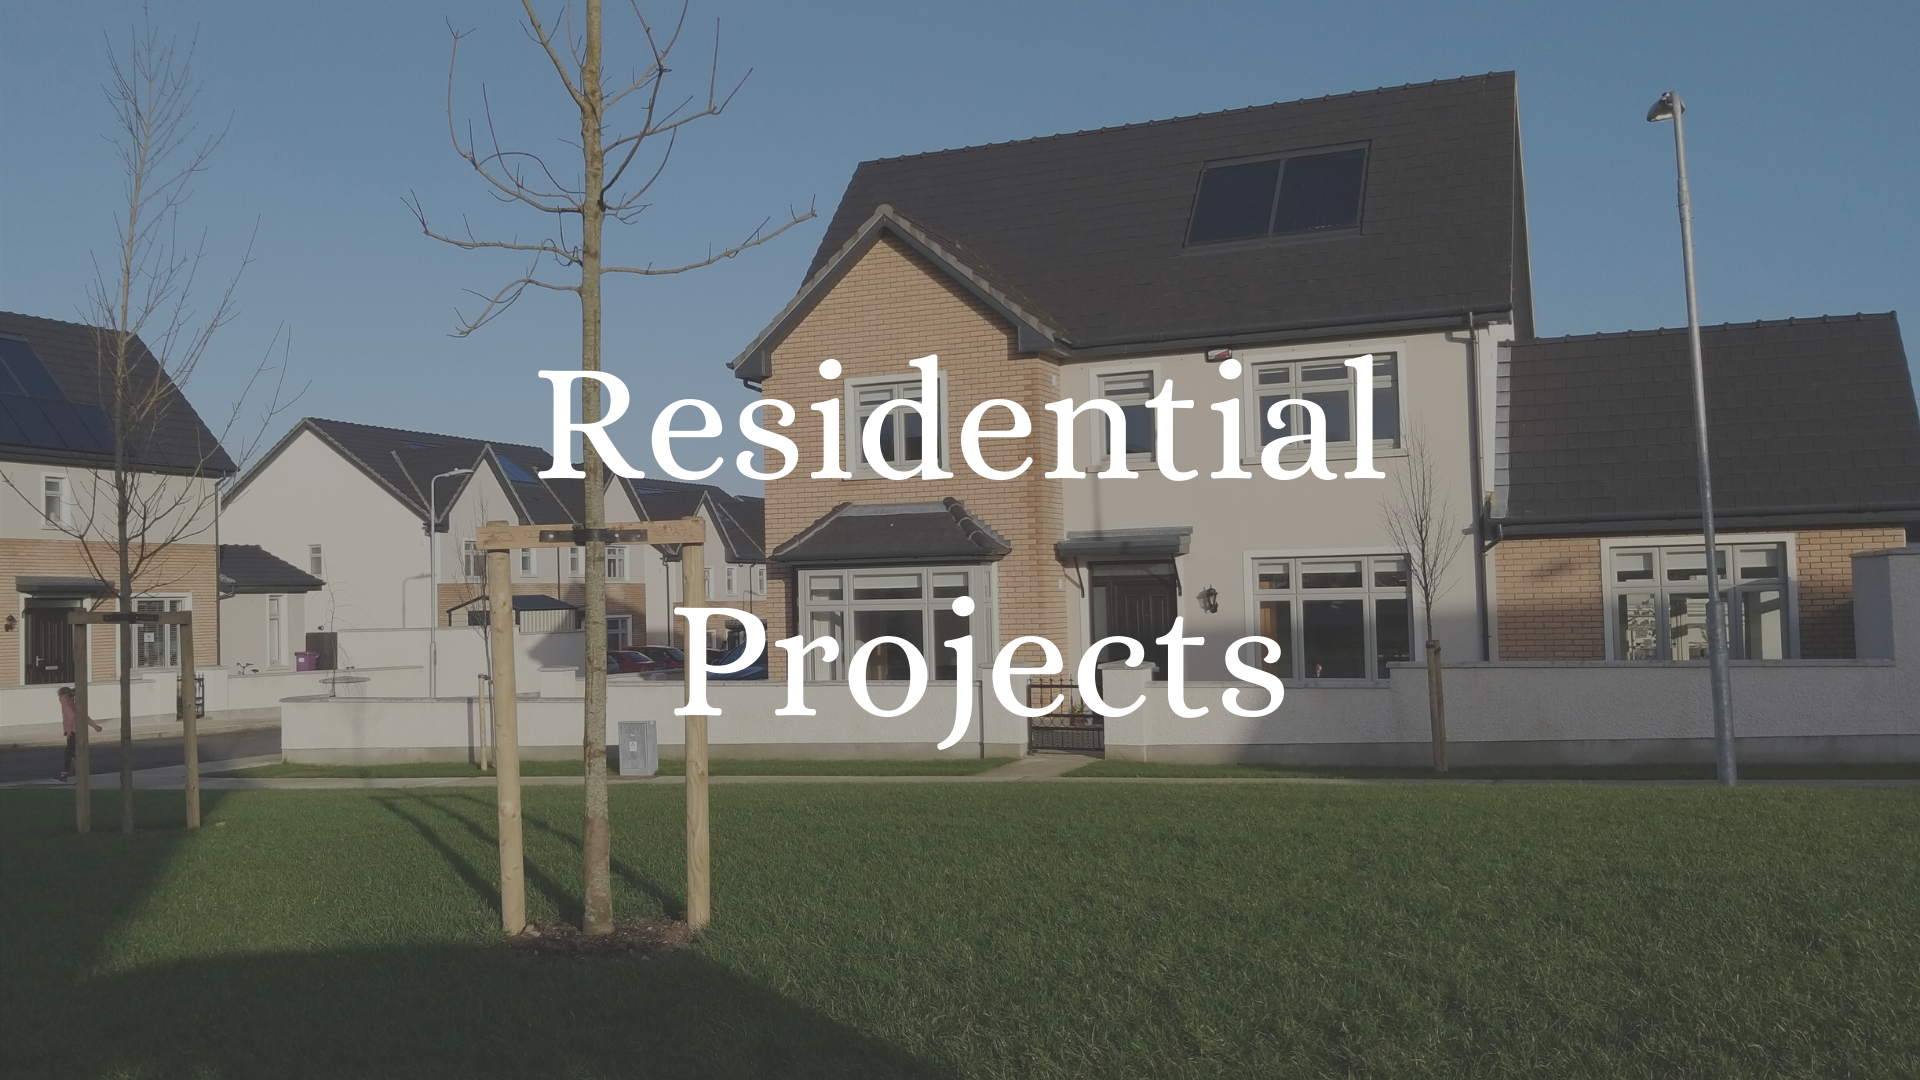 Residental Projects